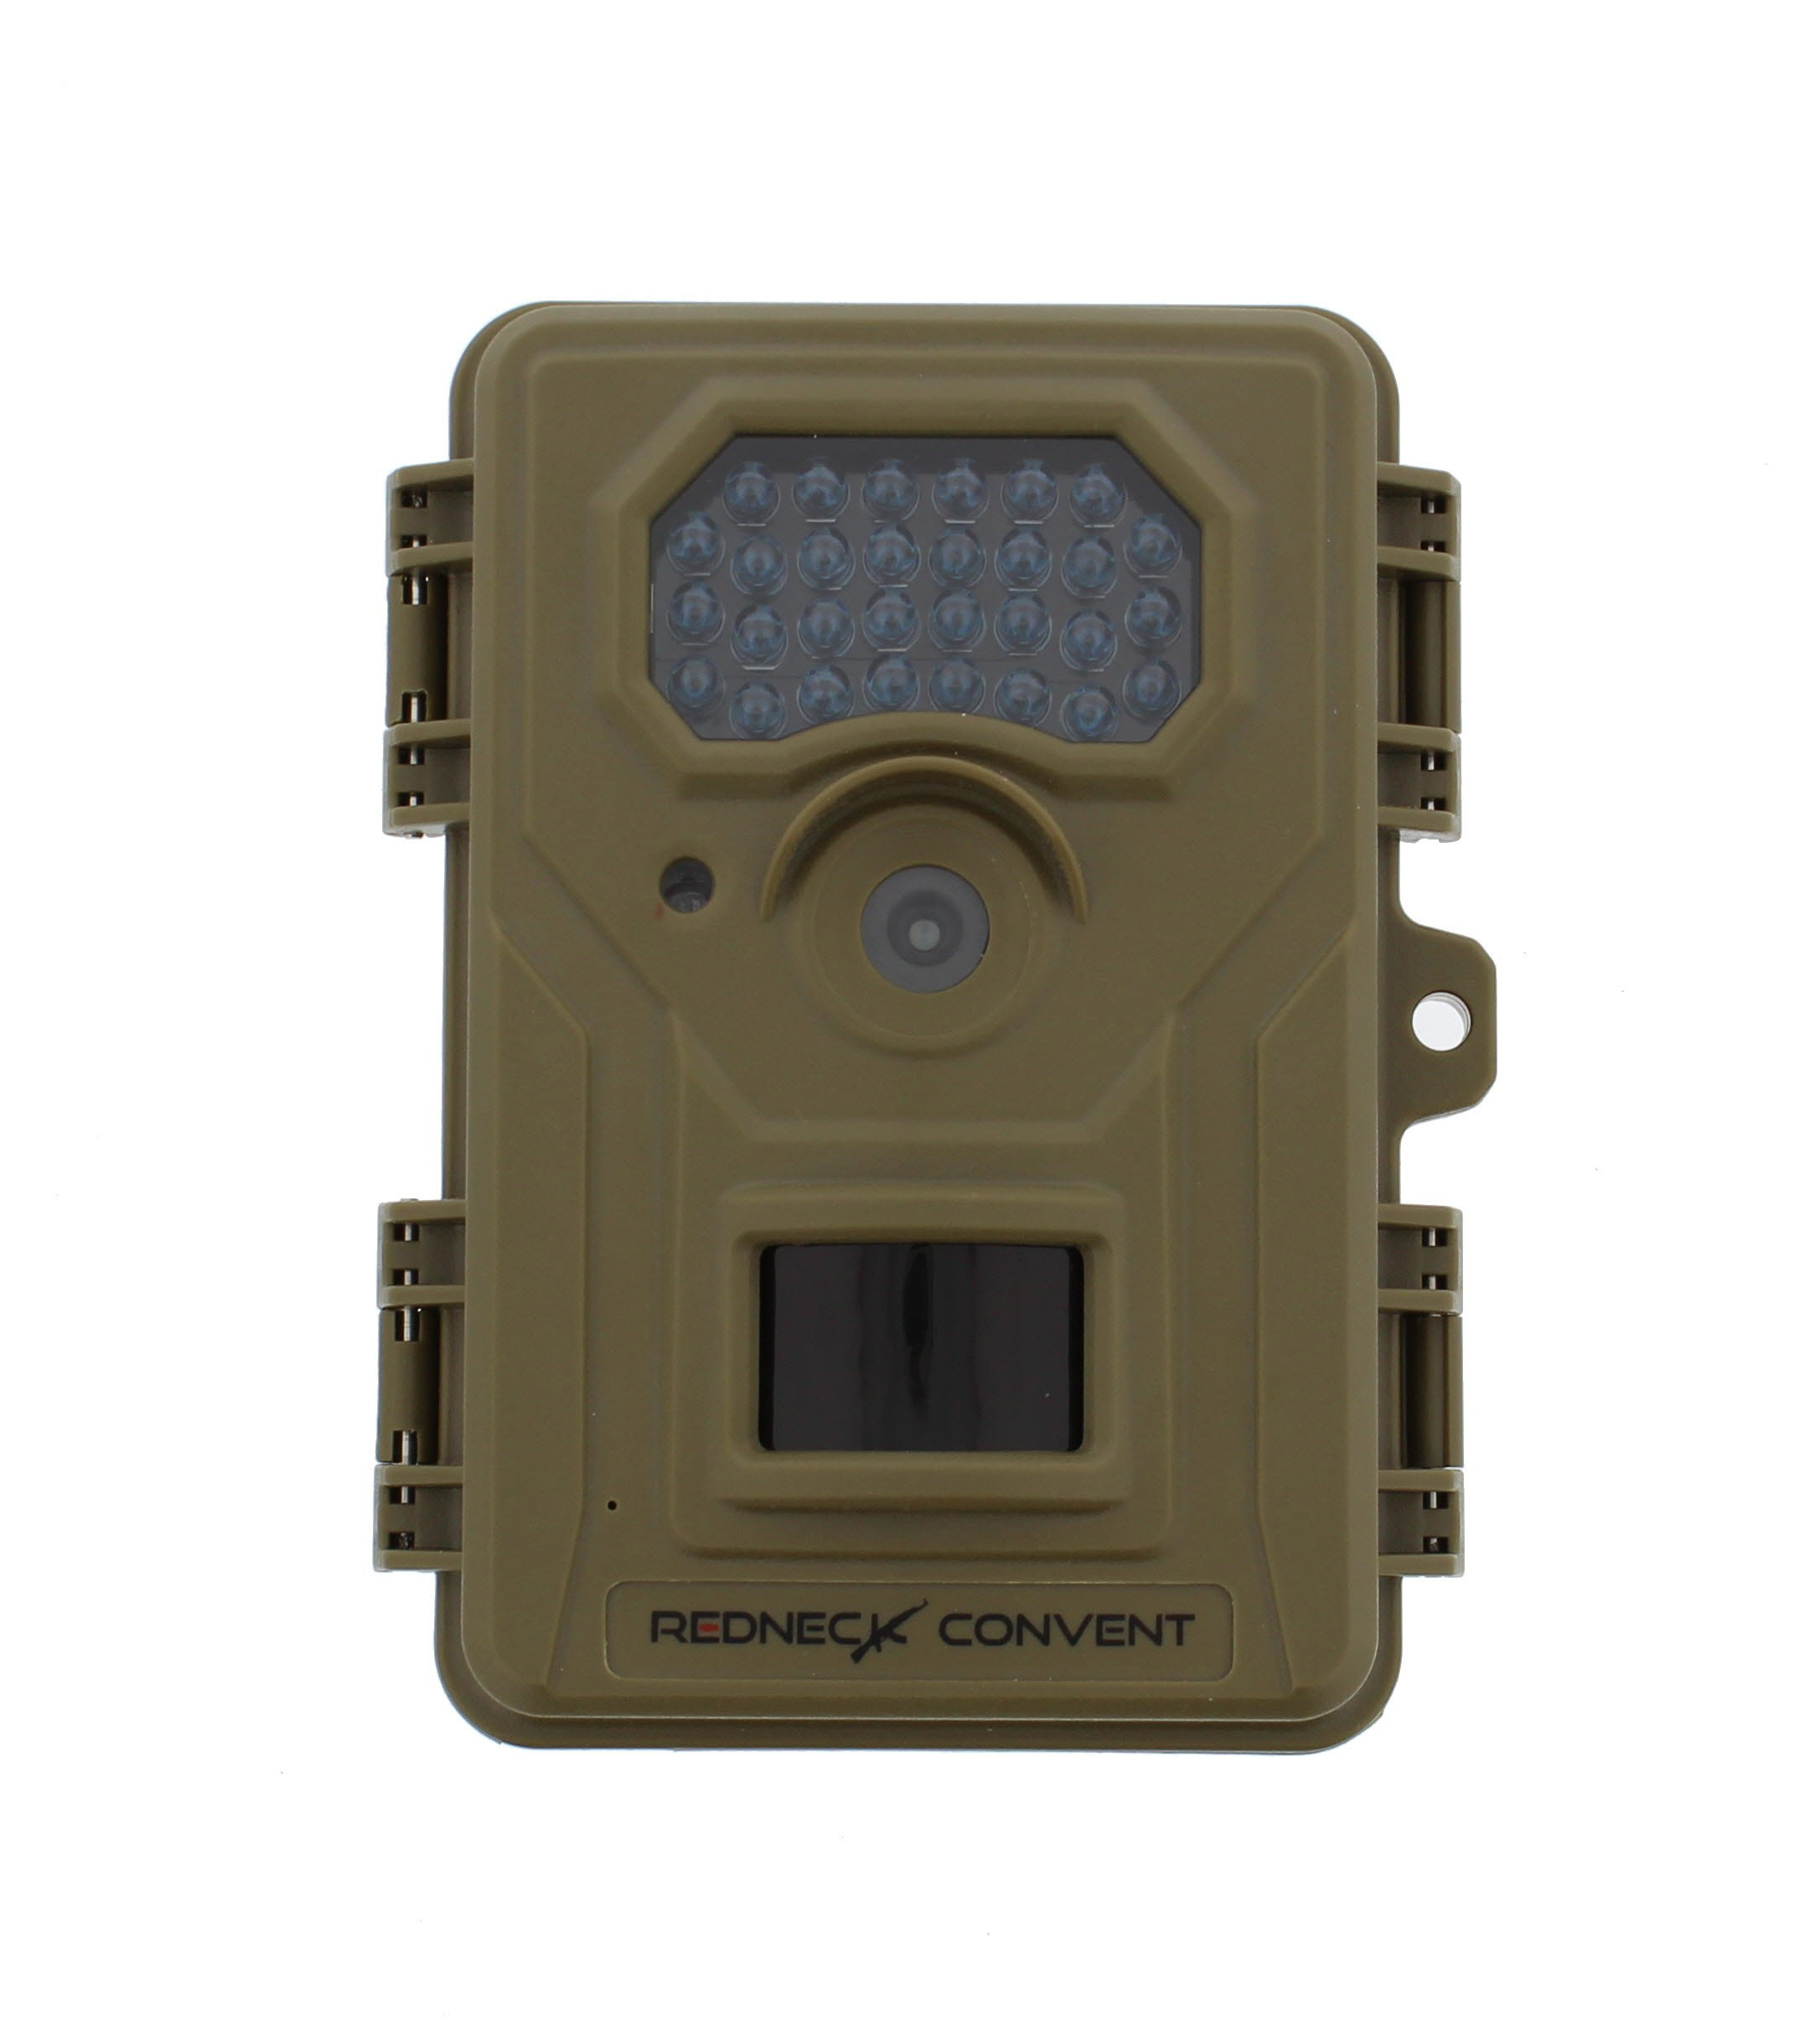 Redneck Convent Waterproof Trail Camera with Night Vision No Glow Hunting Camera 12MP 1080p